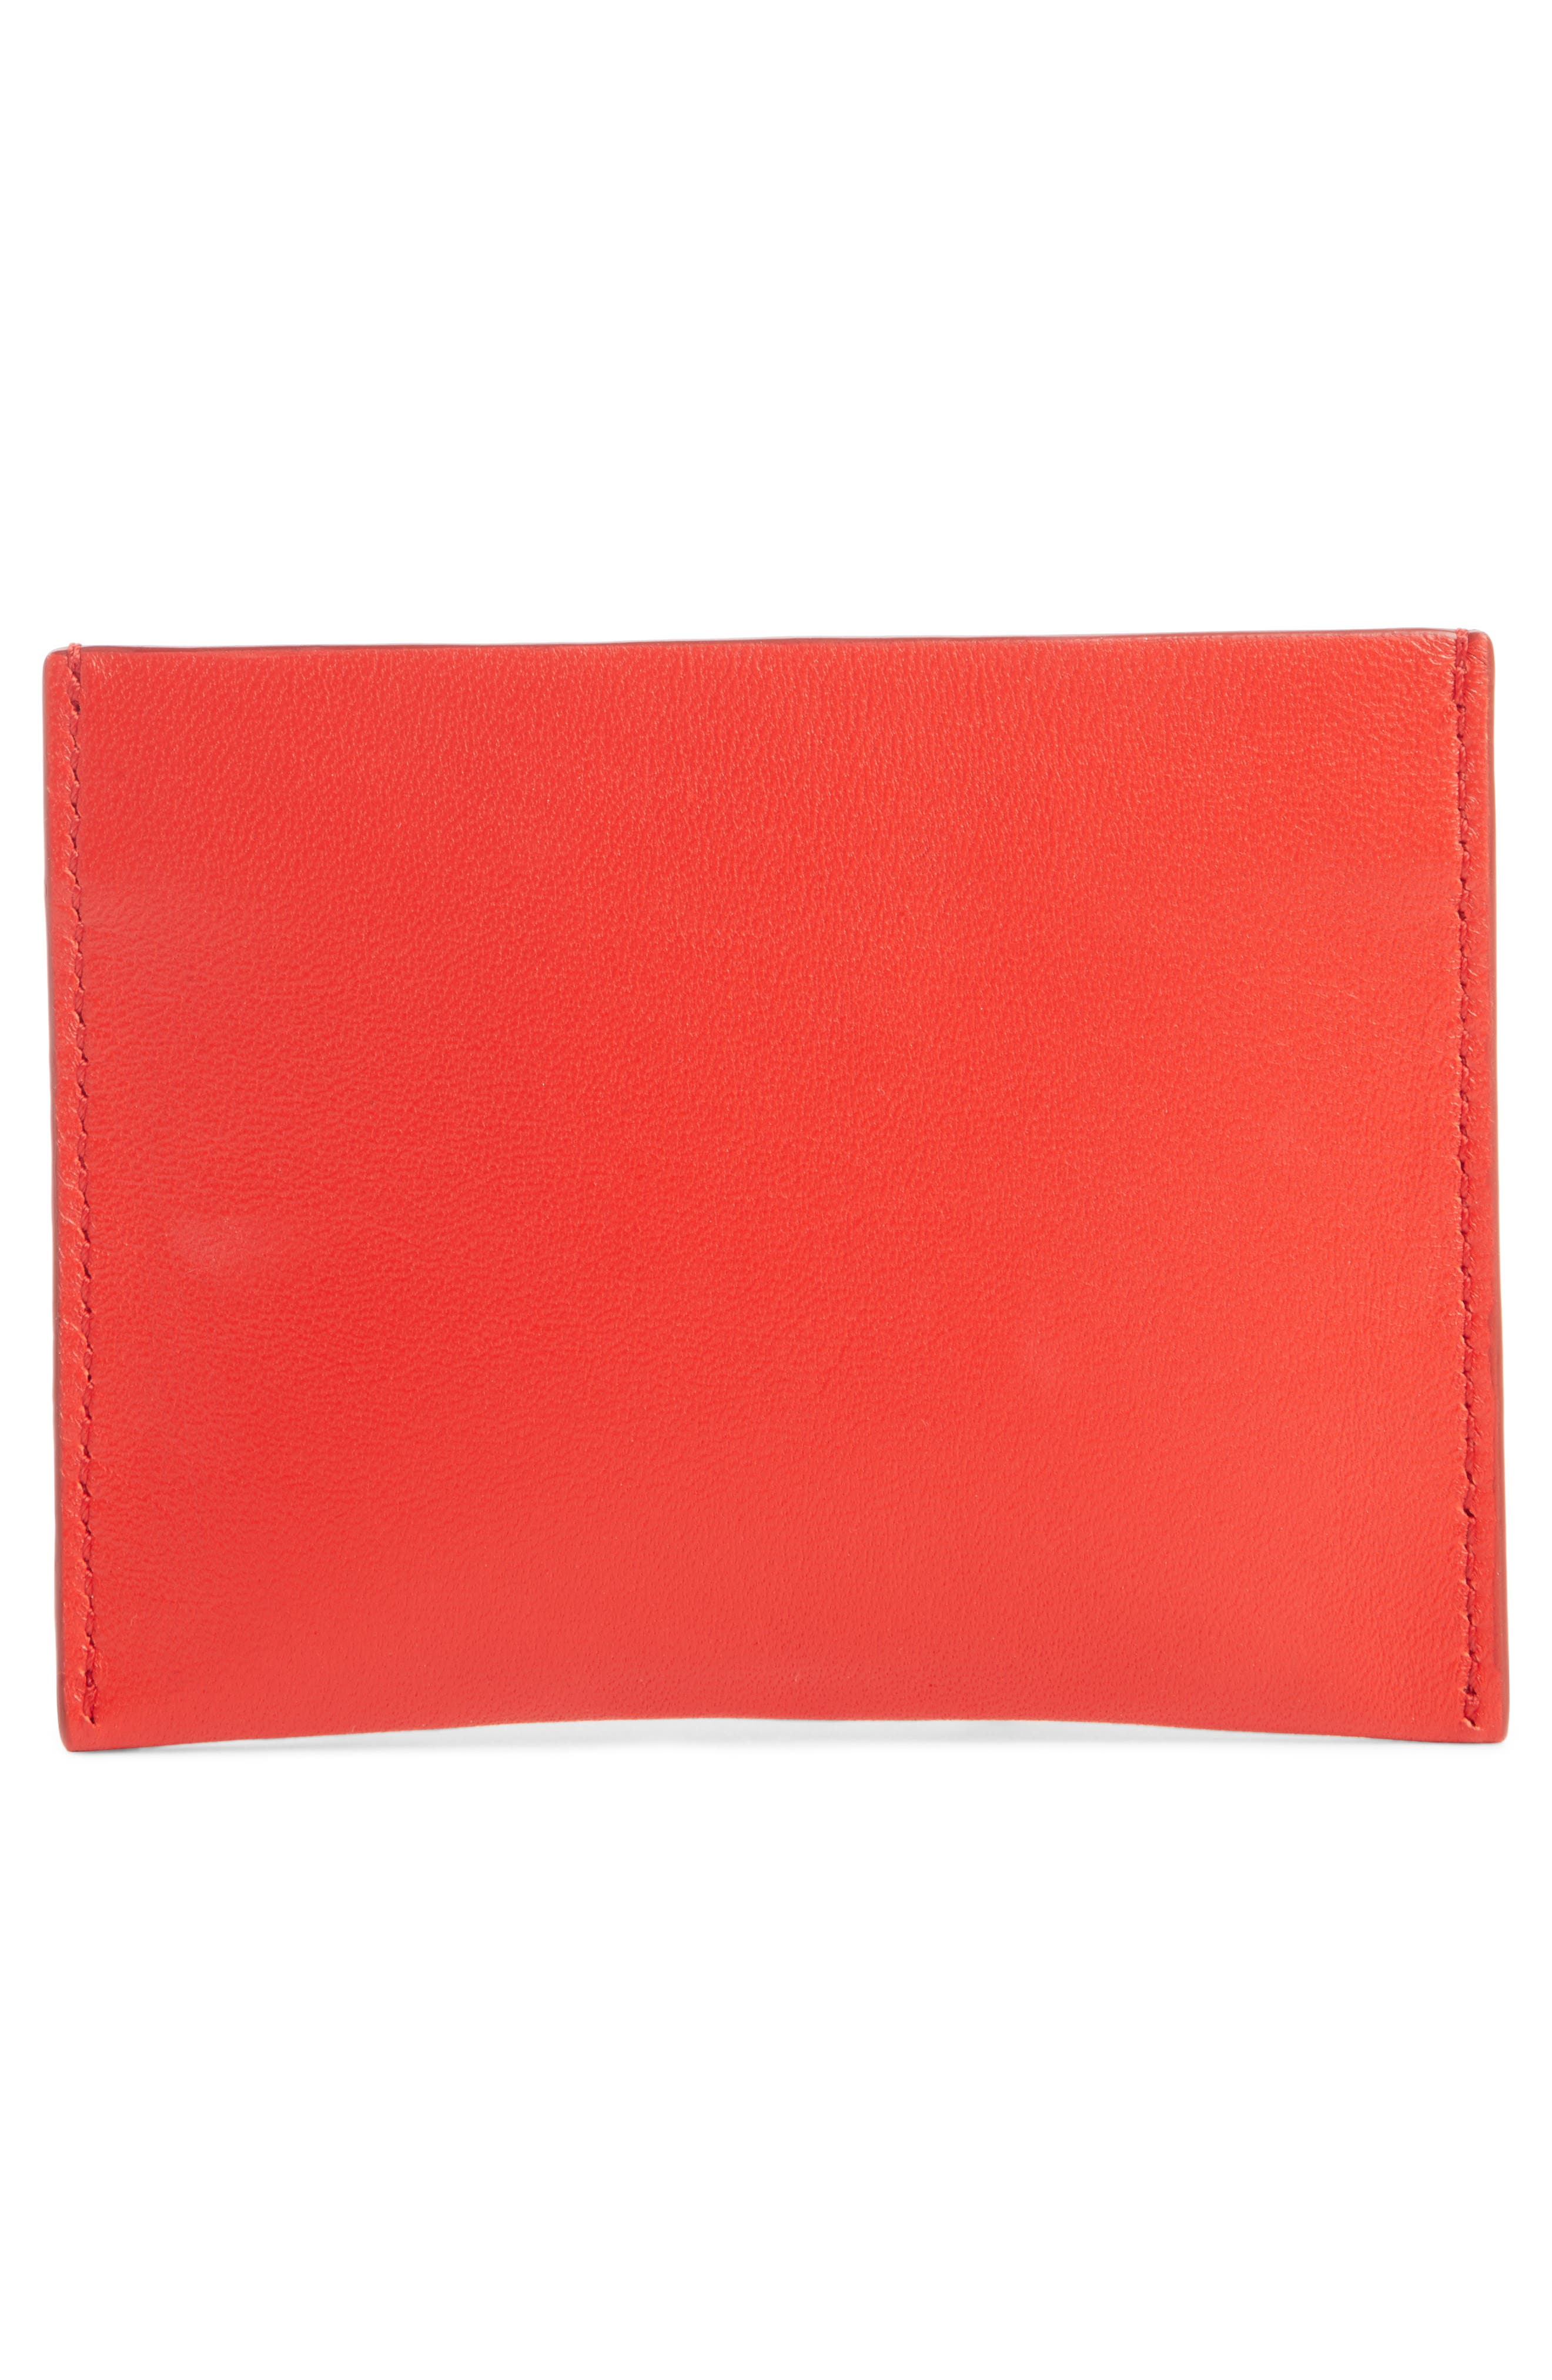 Embossed 4G Leather Card Case,                             Alternate thumbnail 2, color,                             Red